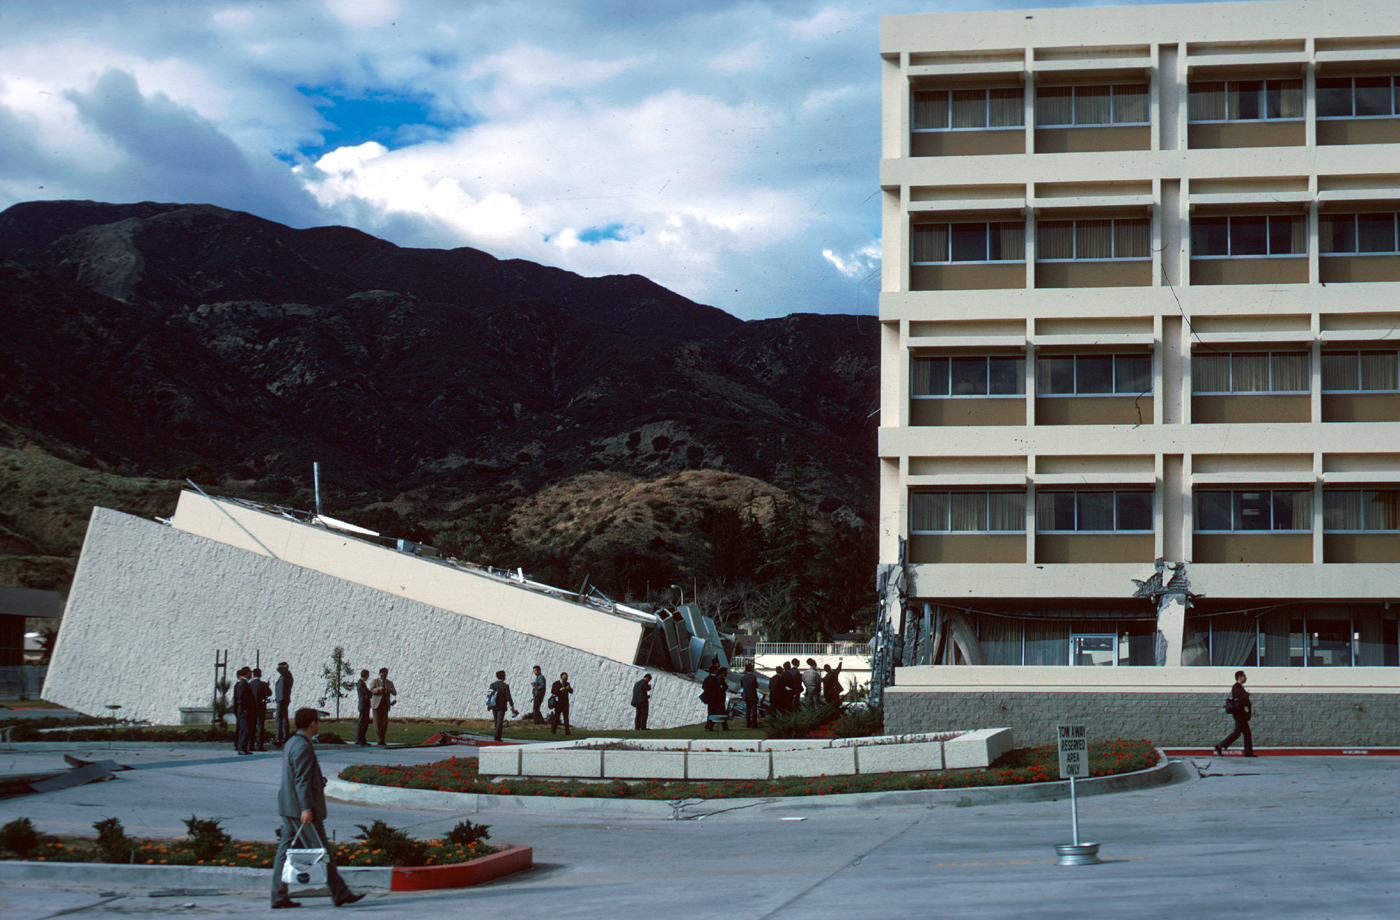 San Fernando, California, Earthquake February 1971. Fallen stair tower of Olive View Hospital, viewed across the parking lot. 1971. (U.S. Geological Survey)